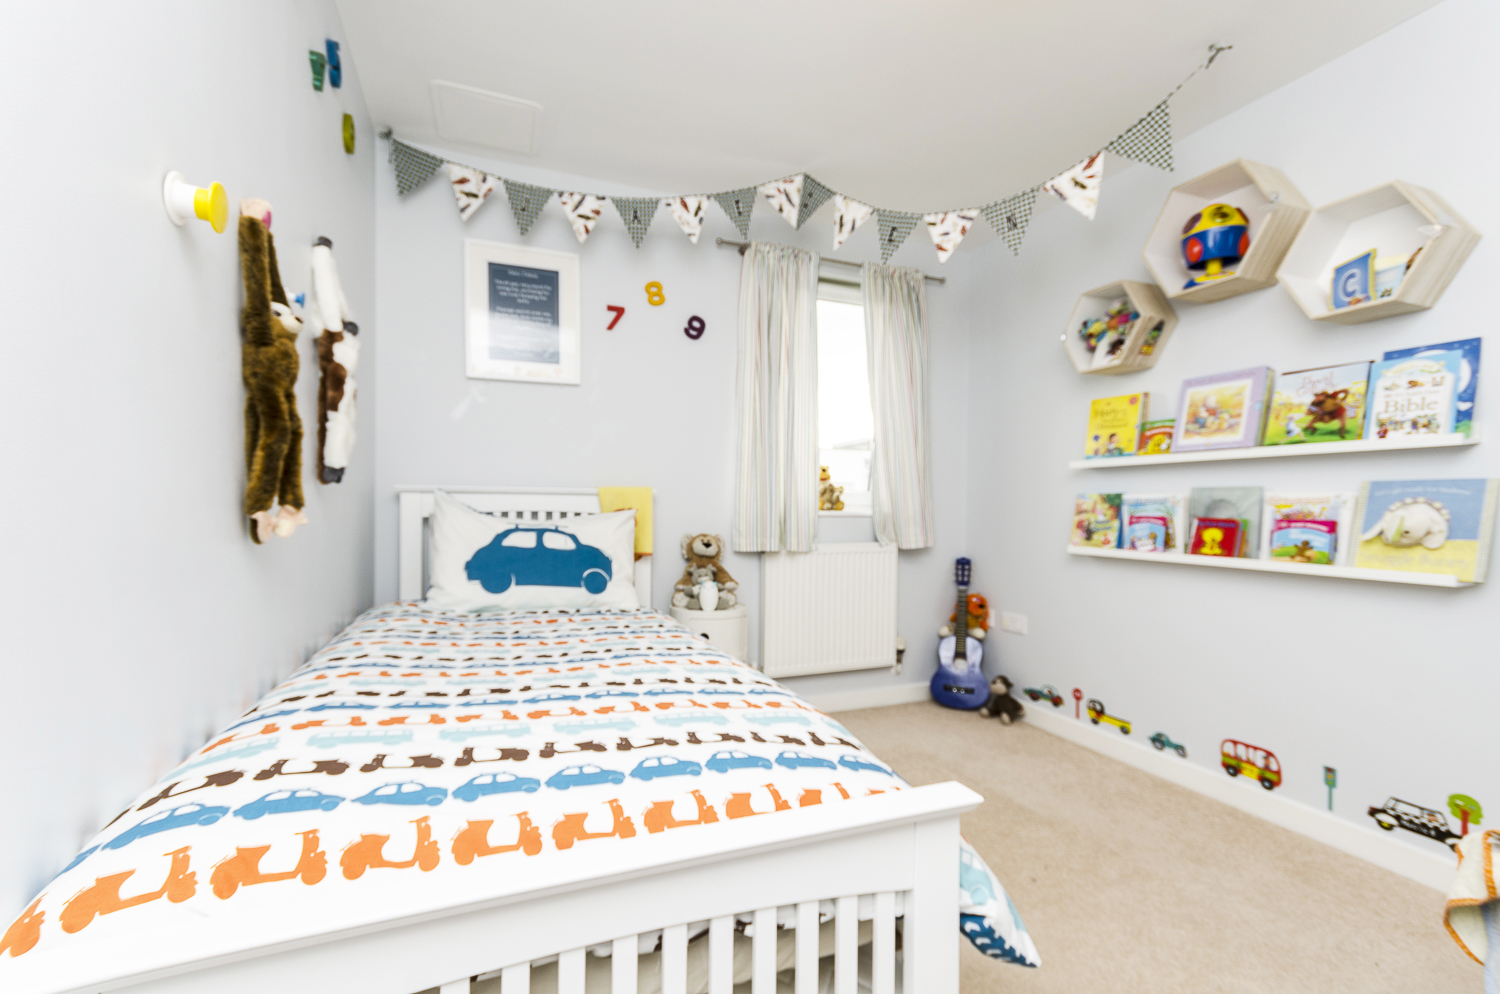 27 stylish ways to decorate your children 39 s bedroom the luxpad - Images of kiddies decorated room ...